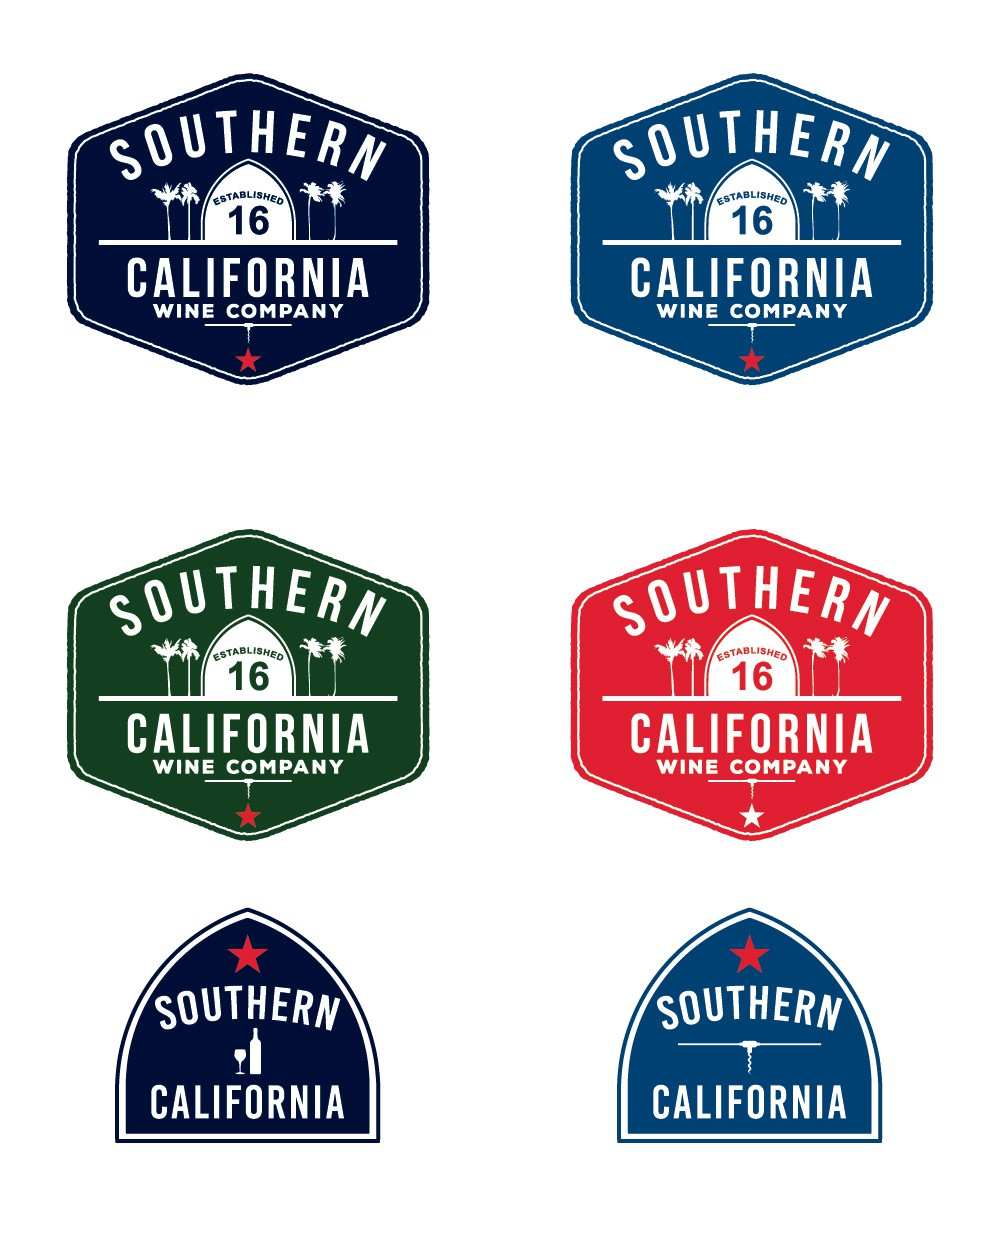 create a vintage logo for a wine company with a Southern California vibe